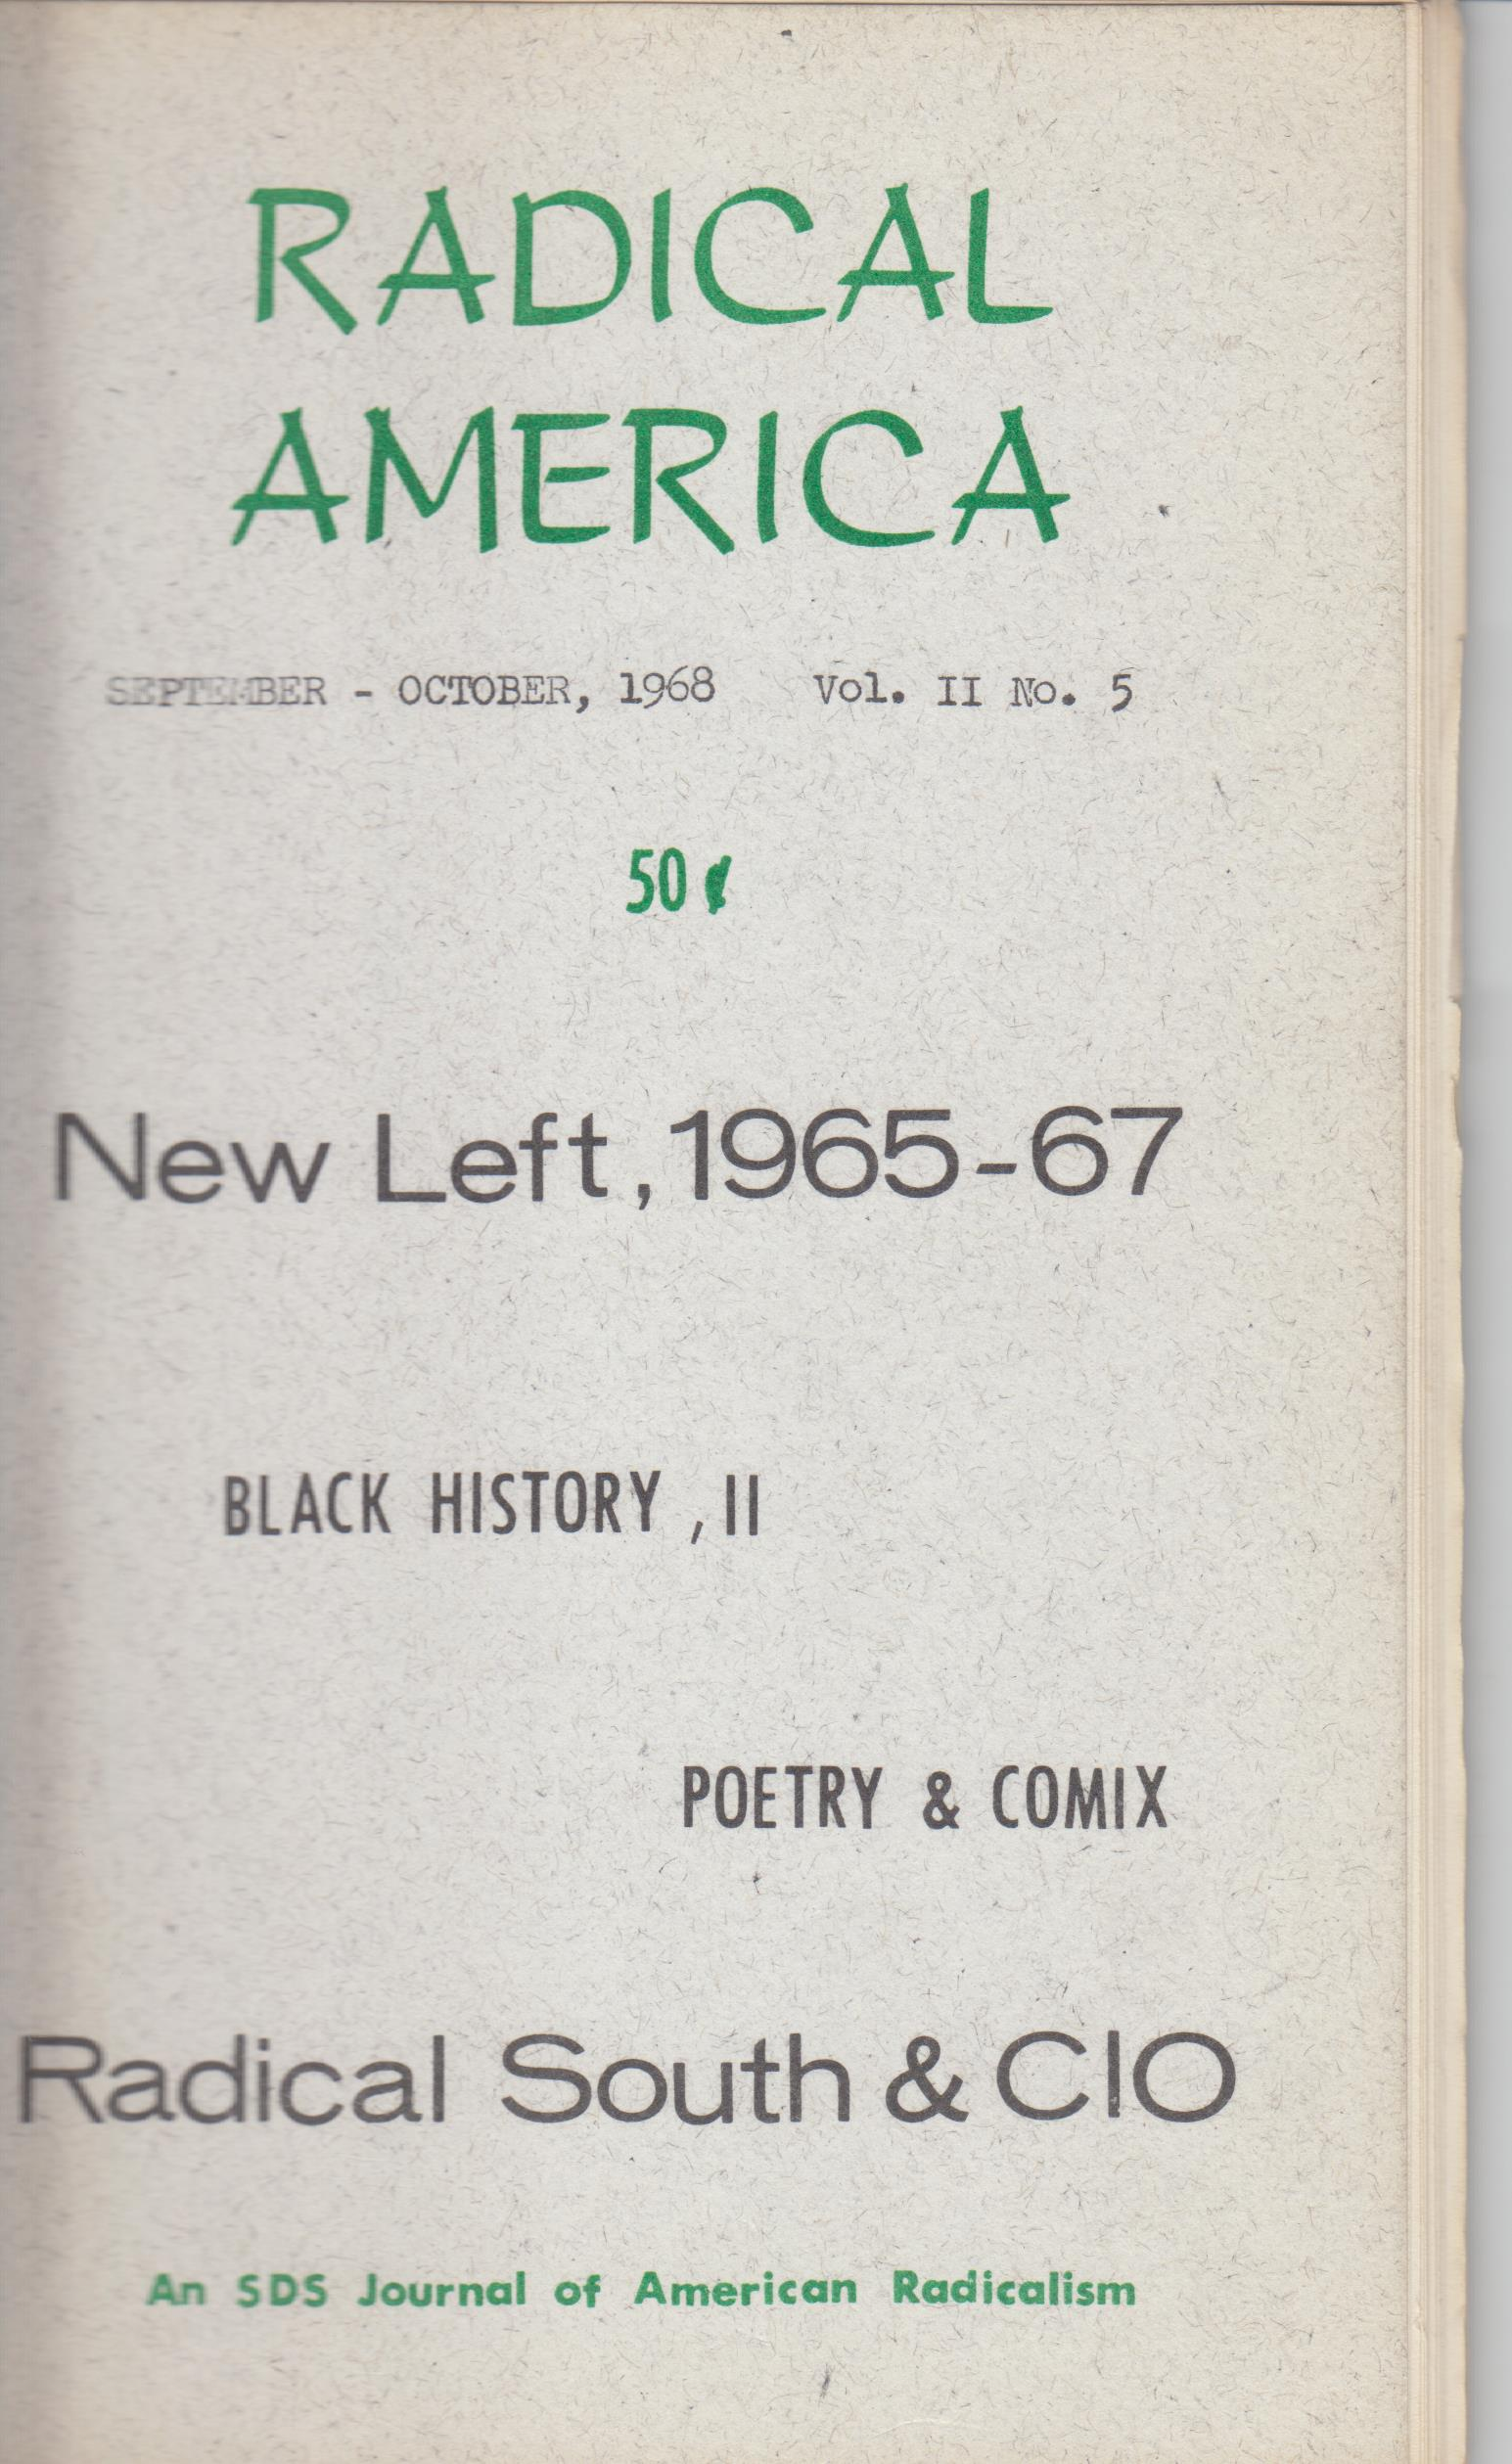 Image for Radical America, Vol.  II, No. 5 (September-October, 1968)